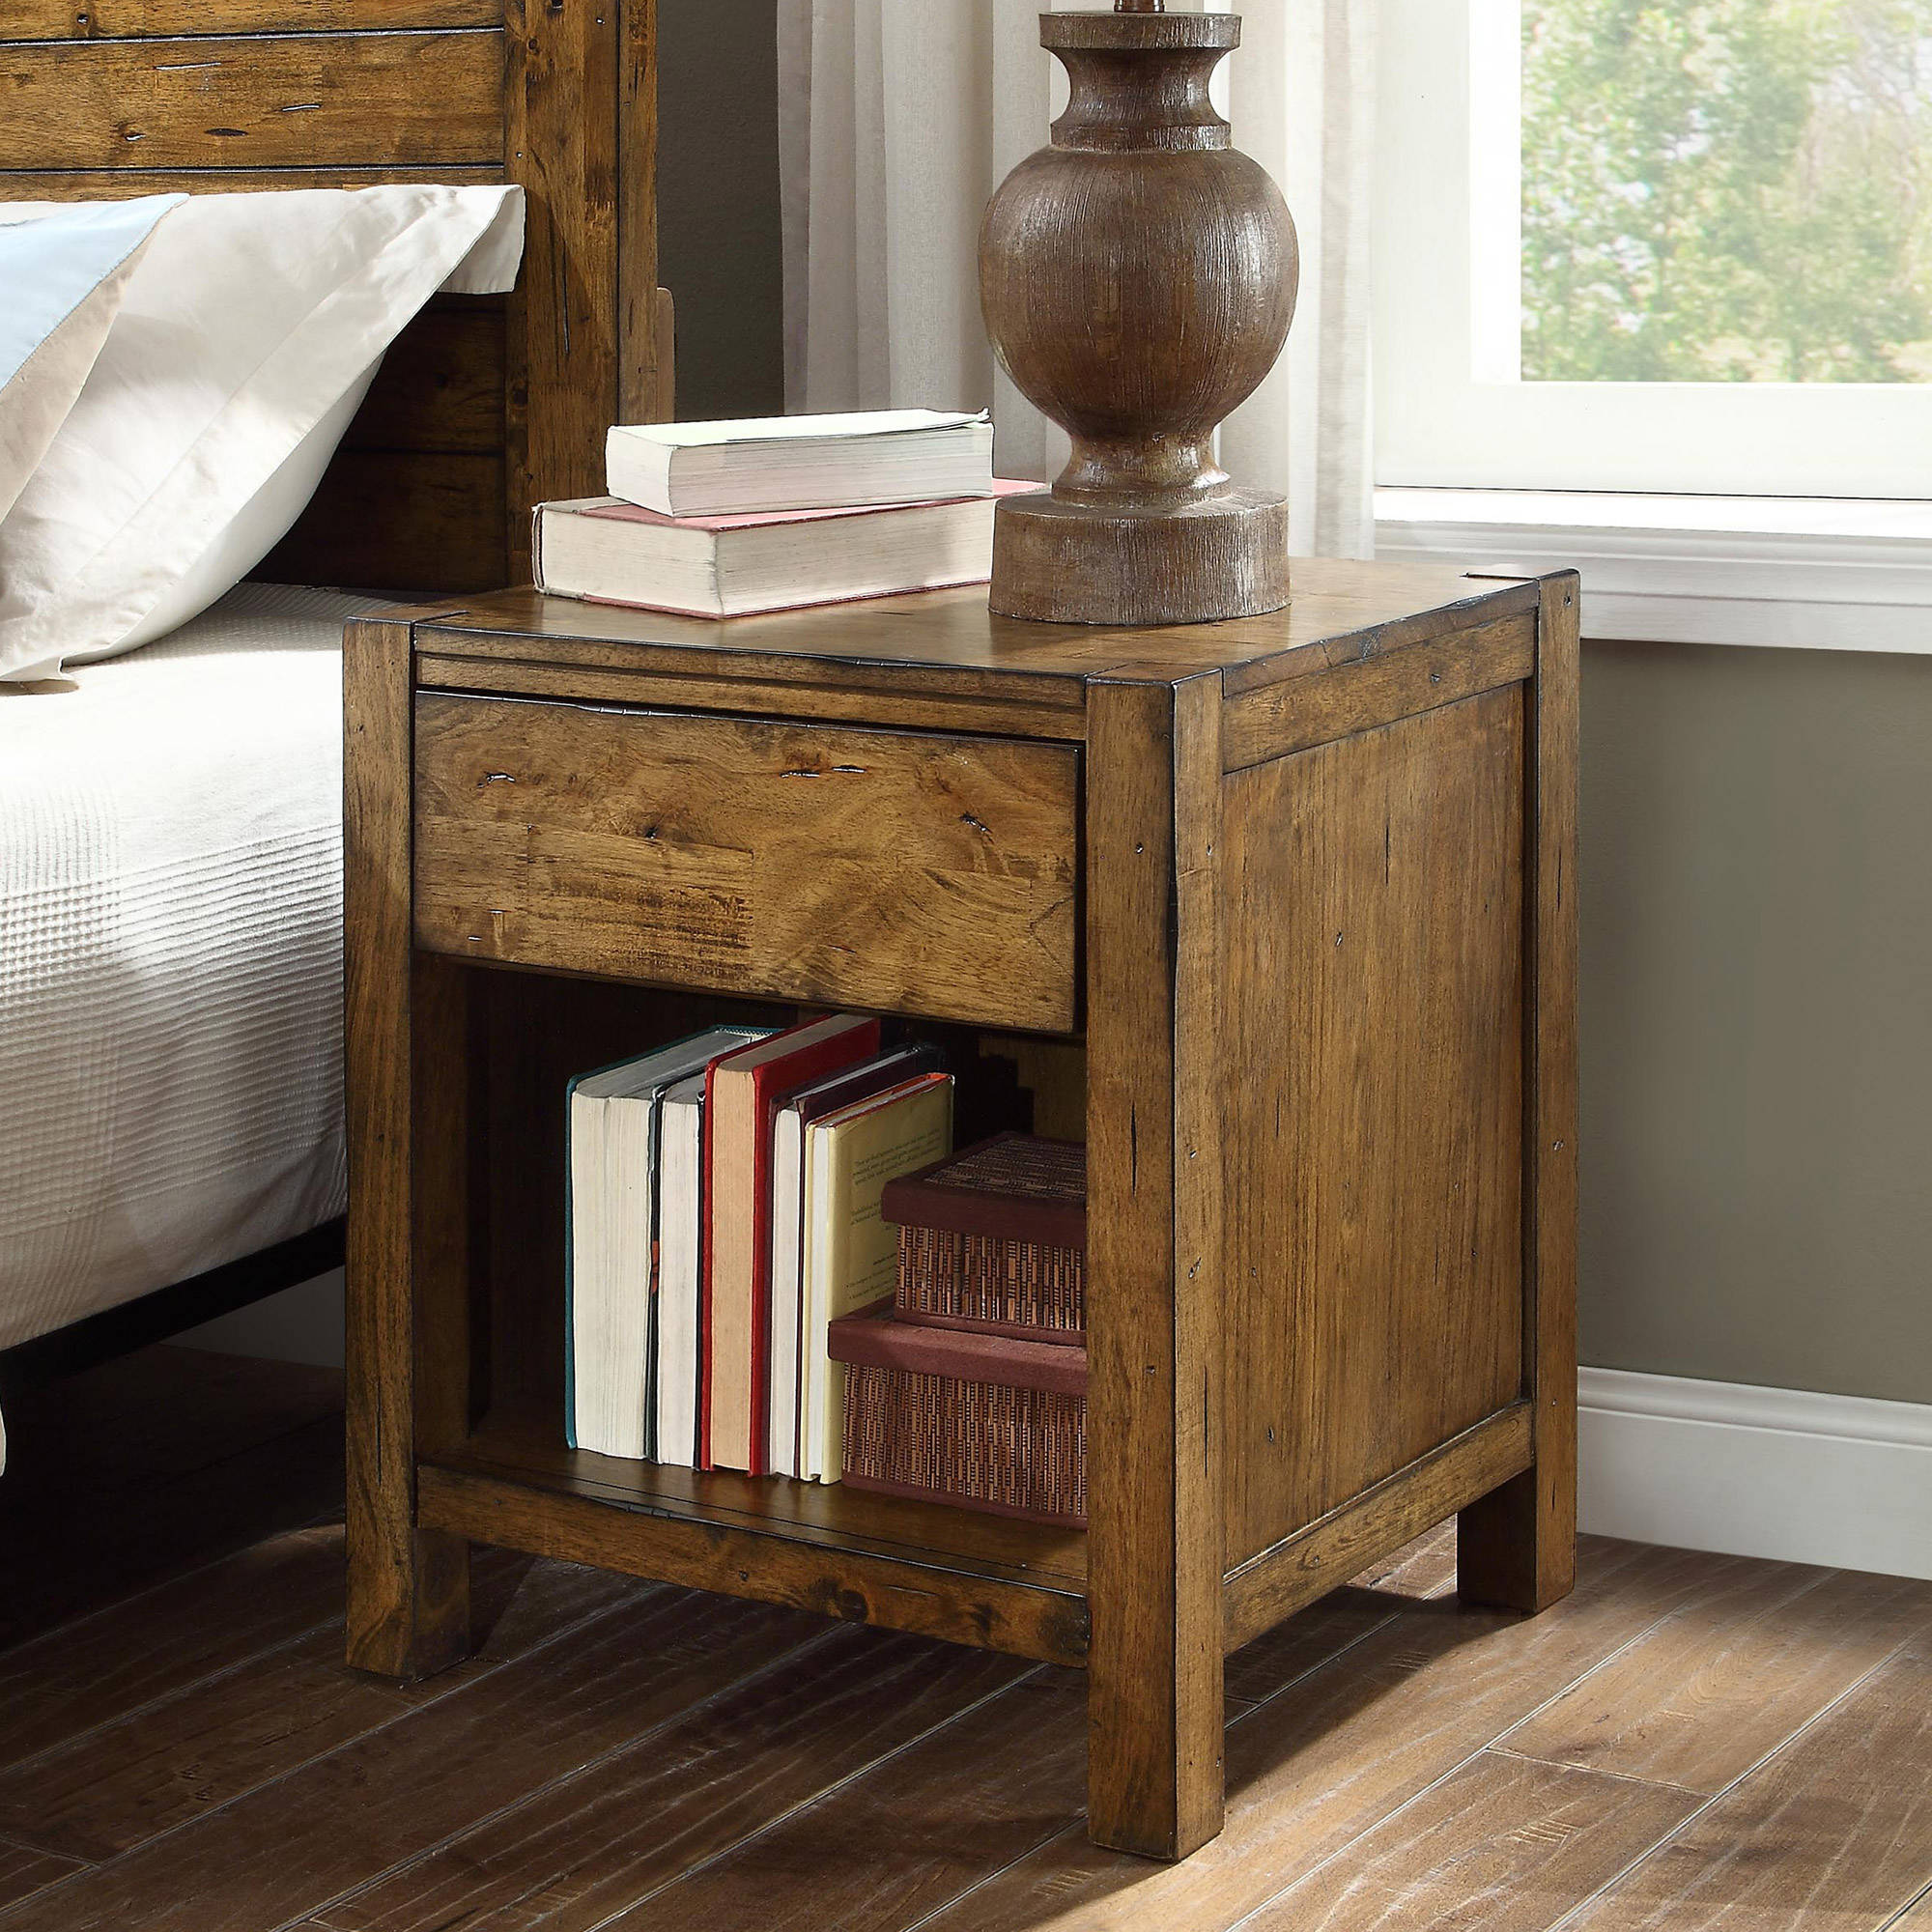 marble top kitchen table the terrific awesome mainstays nightstand rustic nightstands end dark gray oak better homes and gardens bryant maple brown finish ashley furniture round